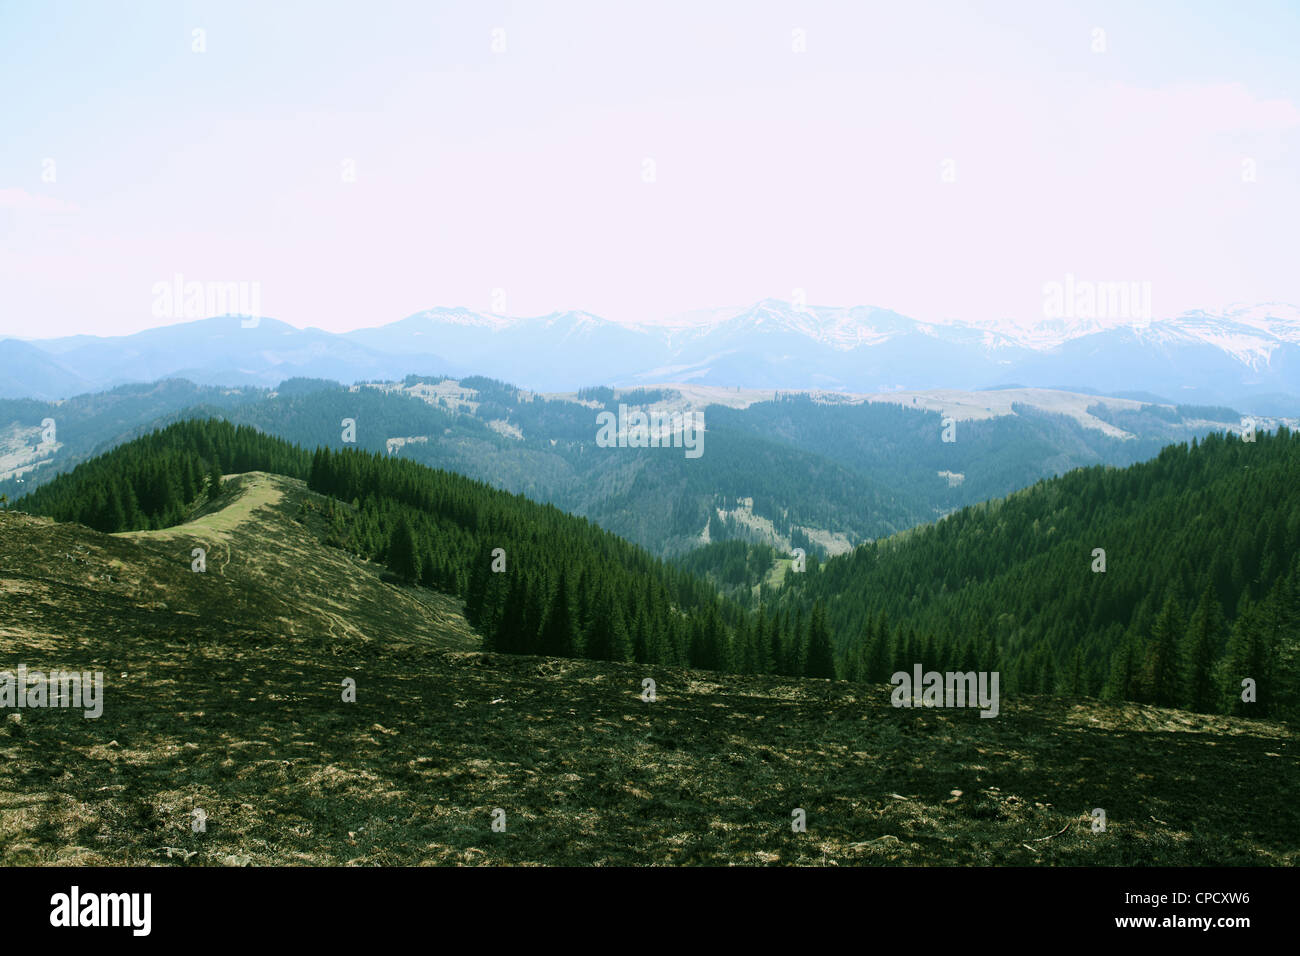 The View for the Montenegrin Ridge in snow, Carpathians, Ukraine Stock Photo